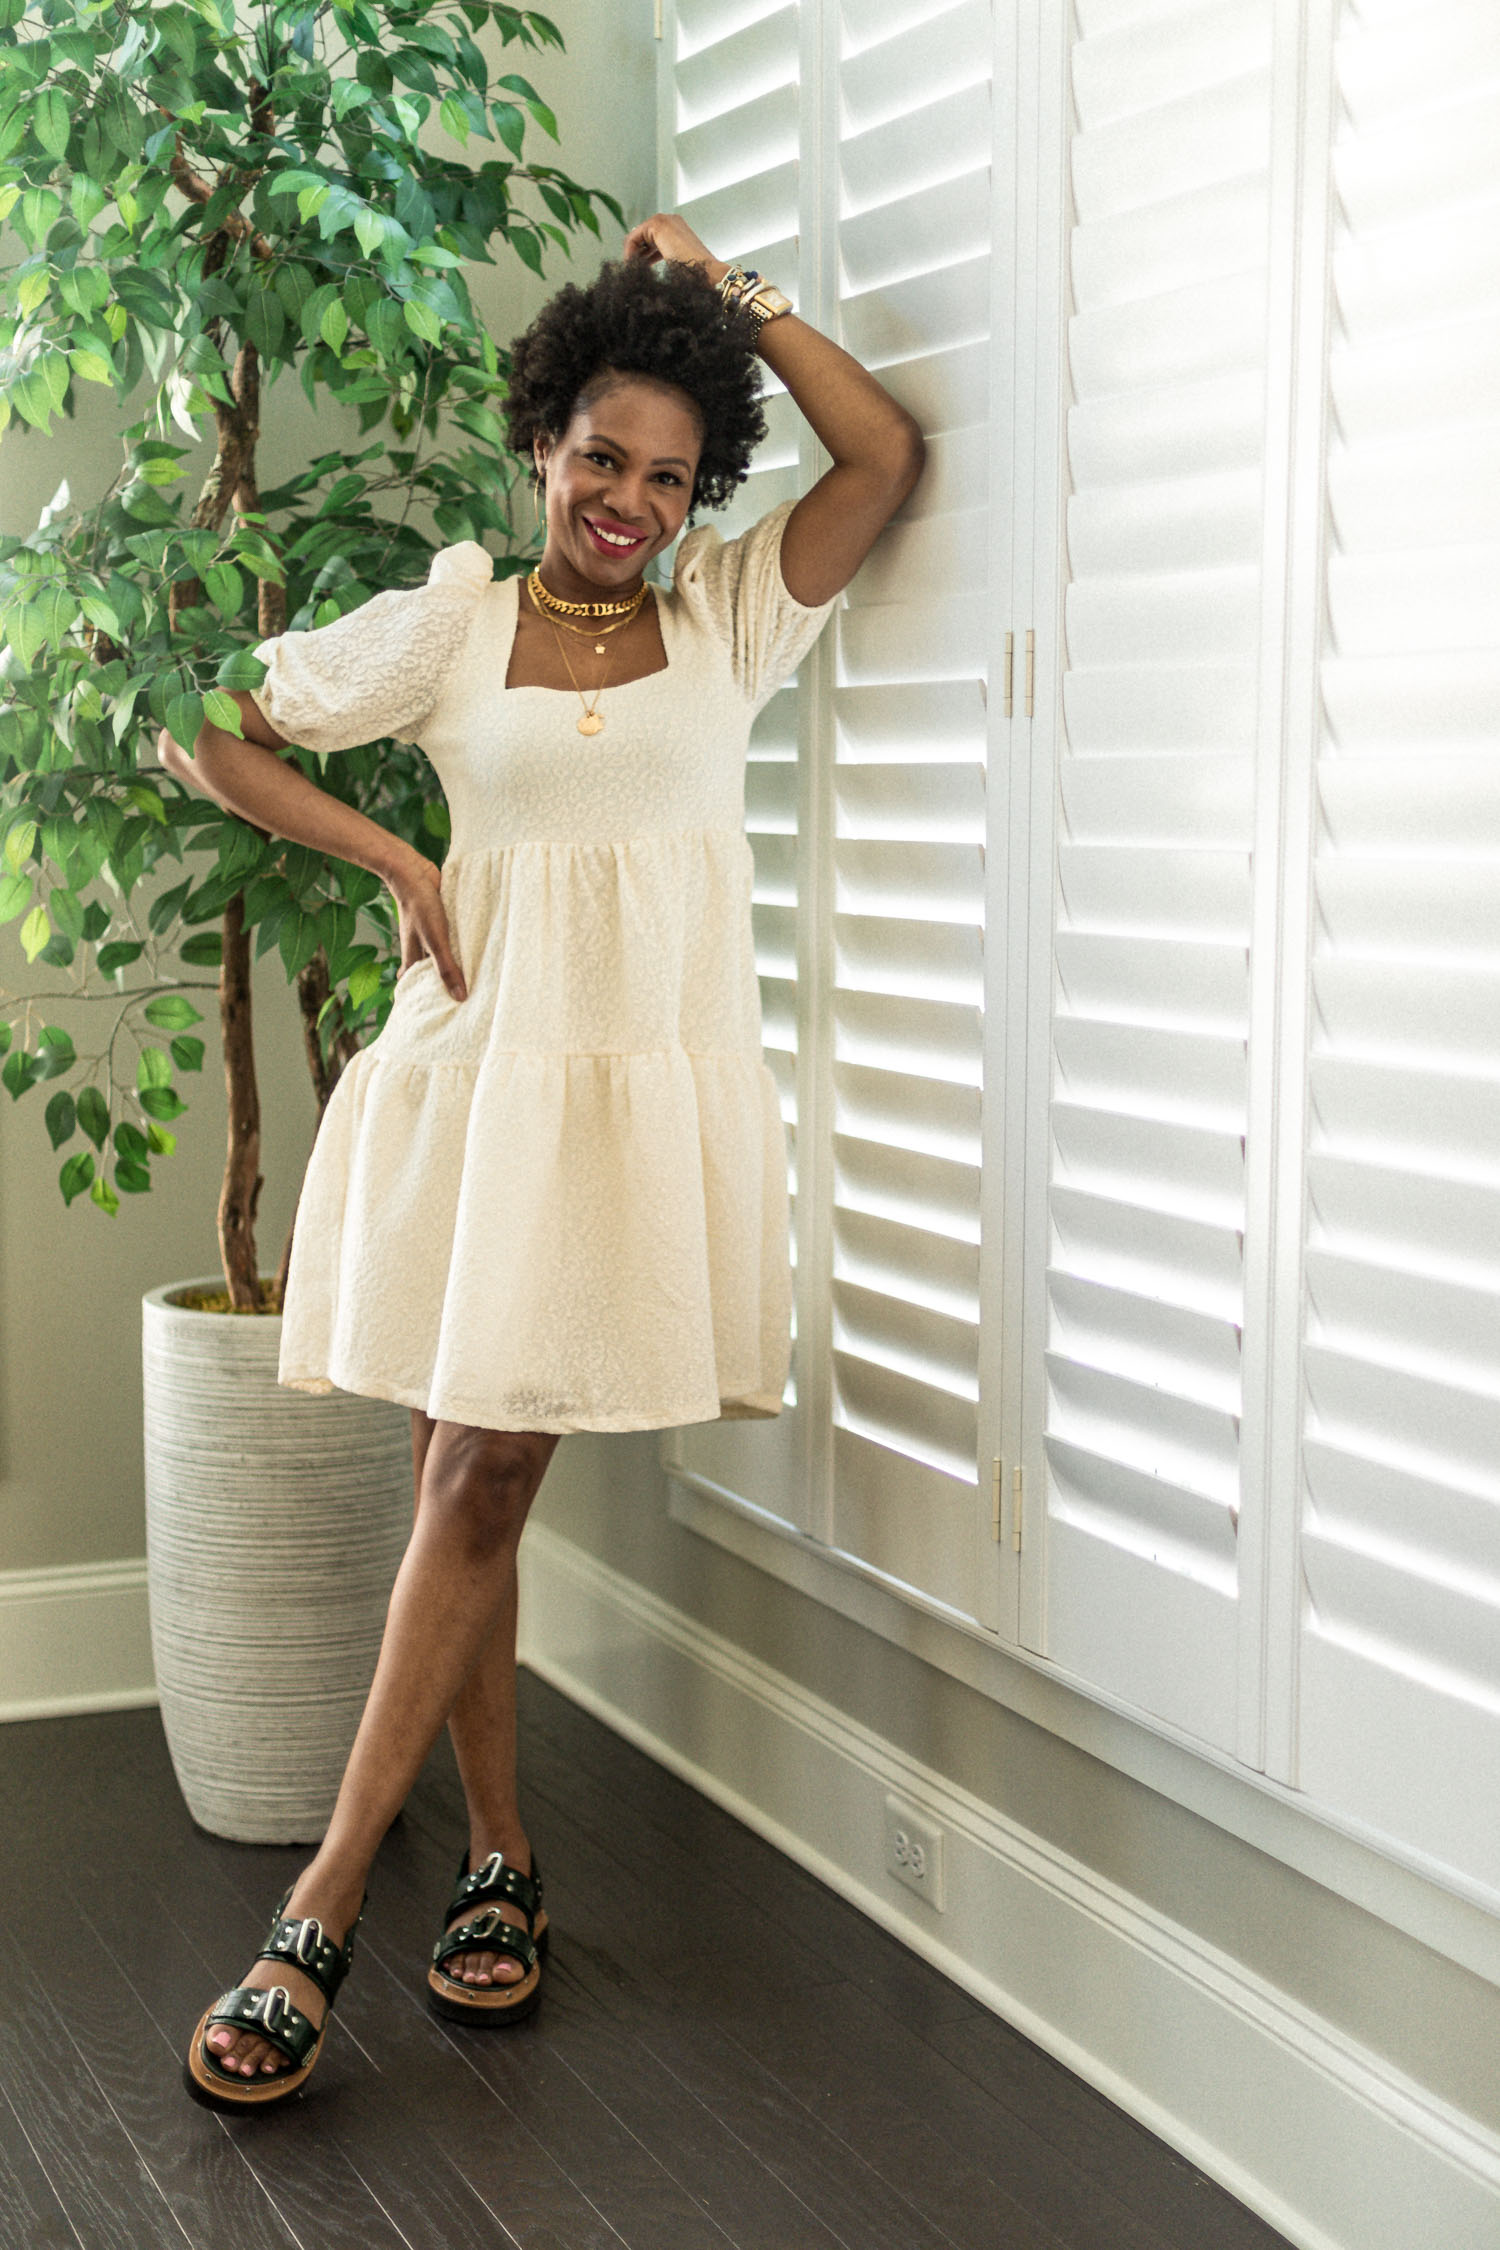 top atlanta fashion blogger, 5 outfits to wear for spring, what to wear for mothers day, what to wear for mothers day, mango shirt dress, smock dress, how to wear a baby doll smock dress, 3.1 philip flat form sandals, flat form sandals, spring shoe trends , how to style flatform sandals, how to style an afro, how to make an afro chic, comfortable spring outfits, try-on haul